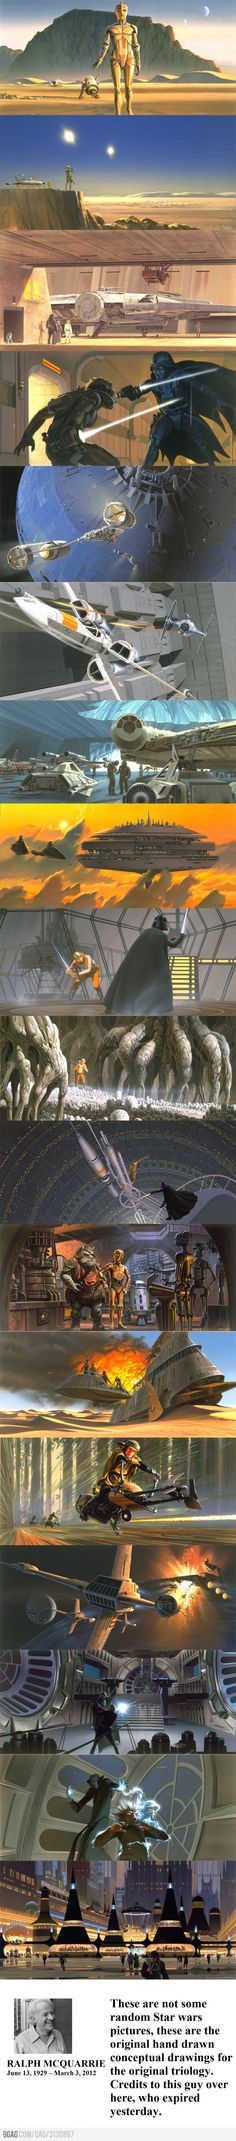 R.M.'s amazing original concept art. He envisioned imagery that spawned a universe.